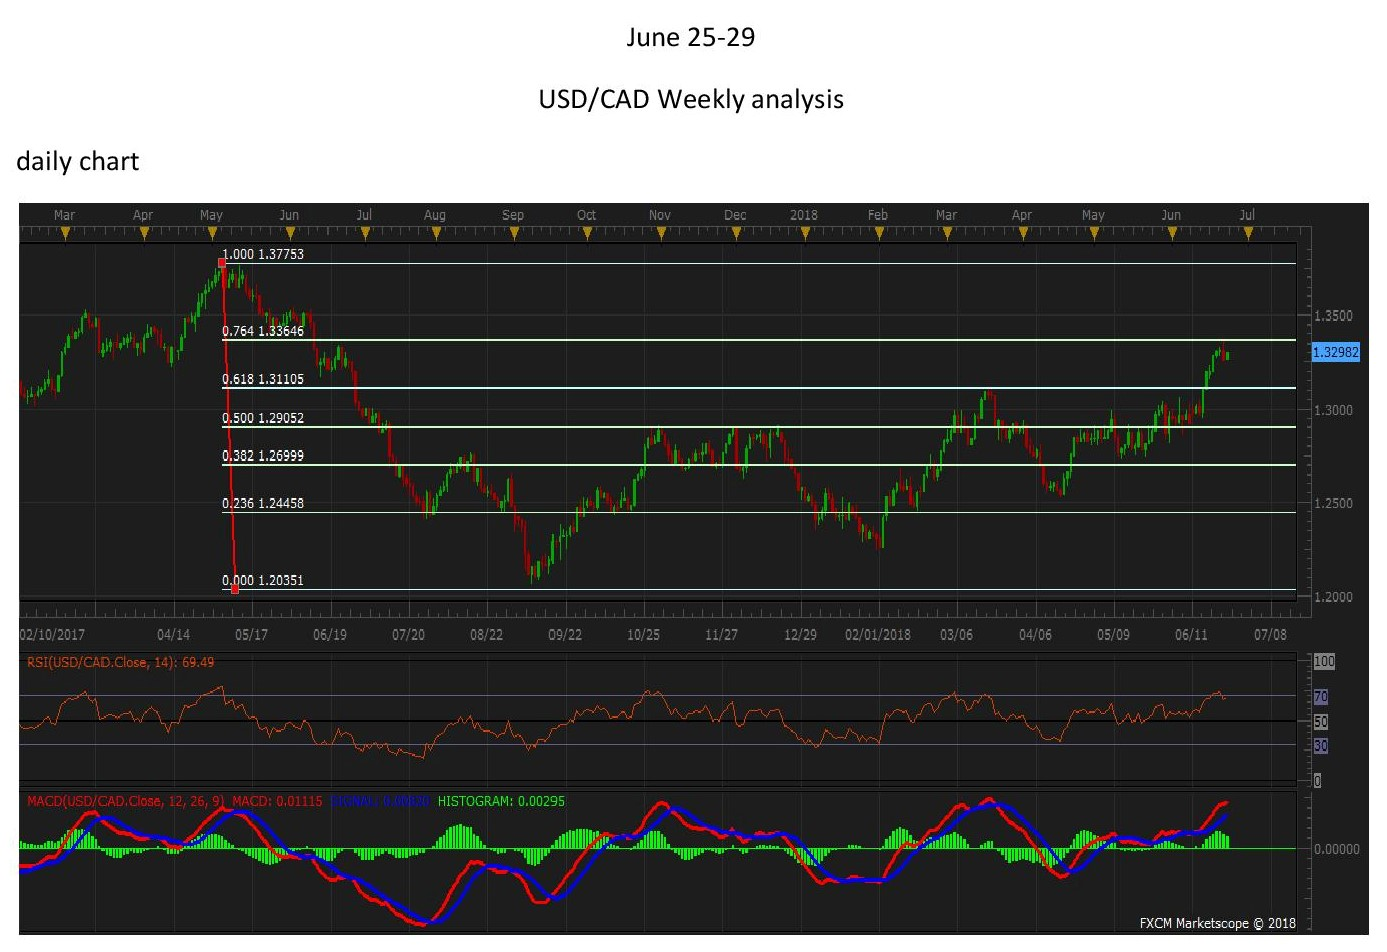 USDCADdaily25June page 001 1